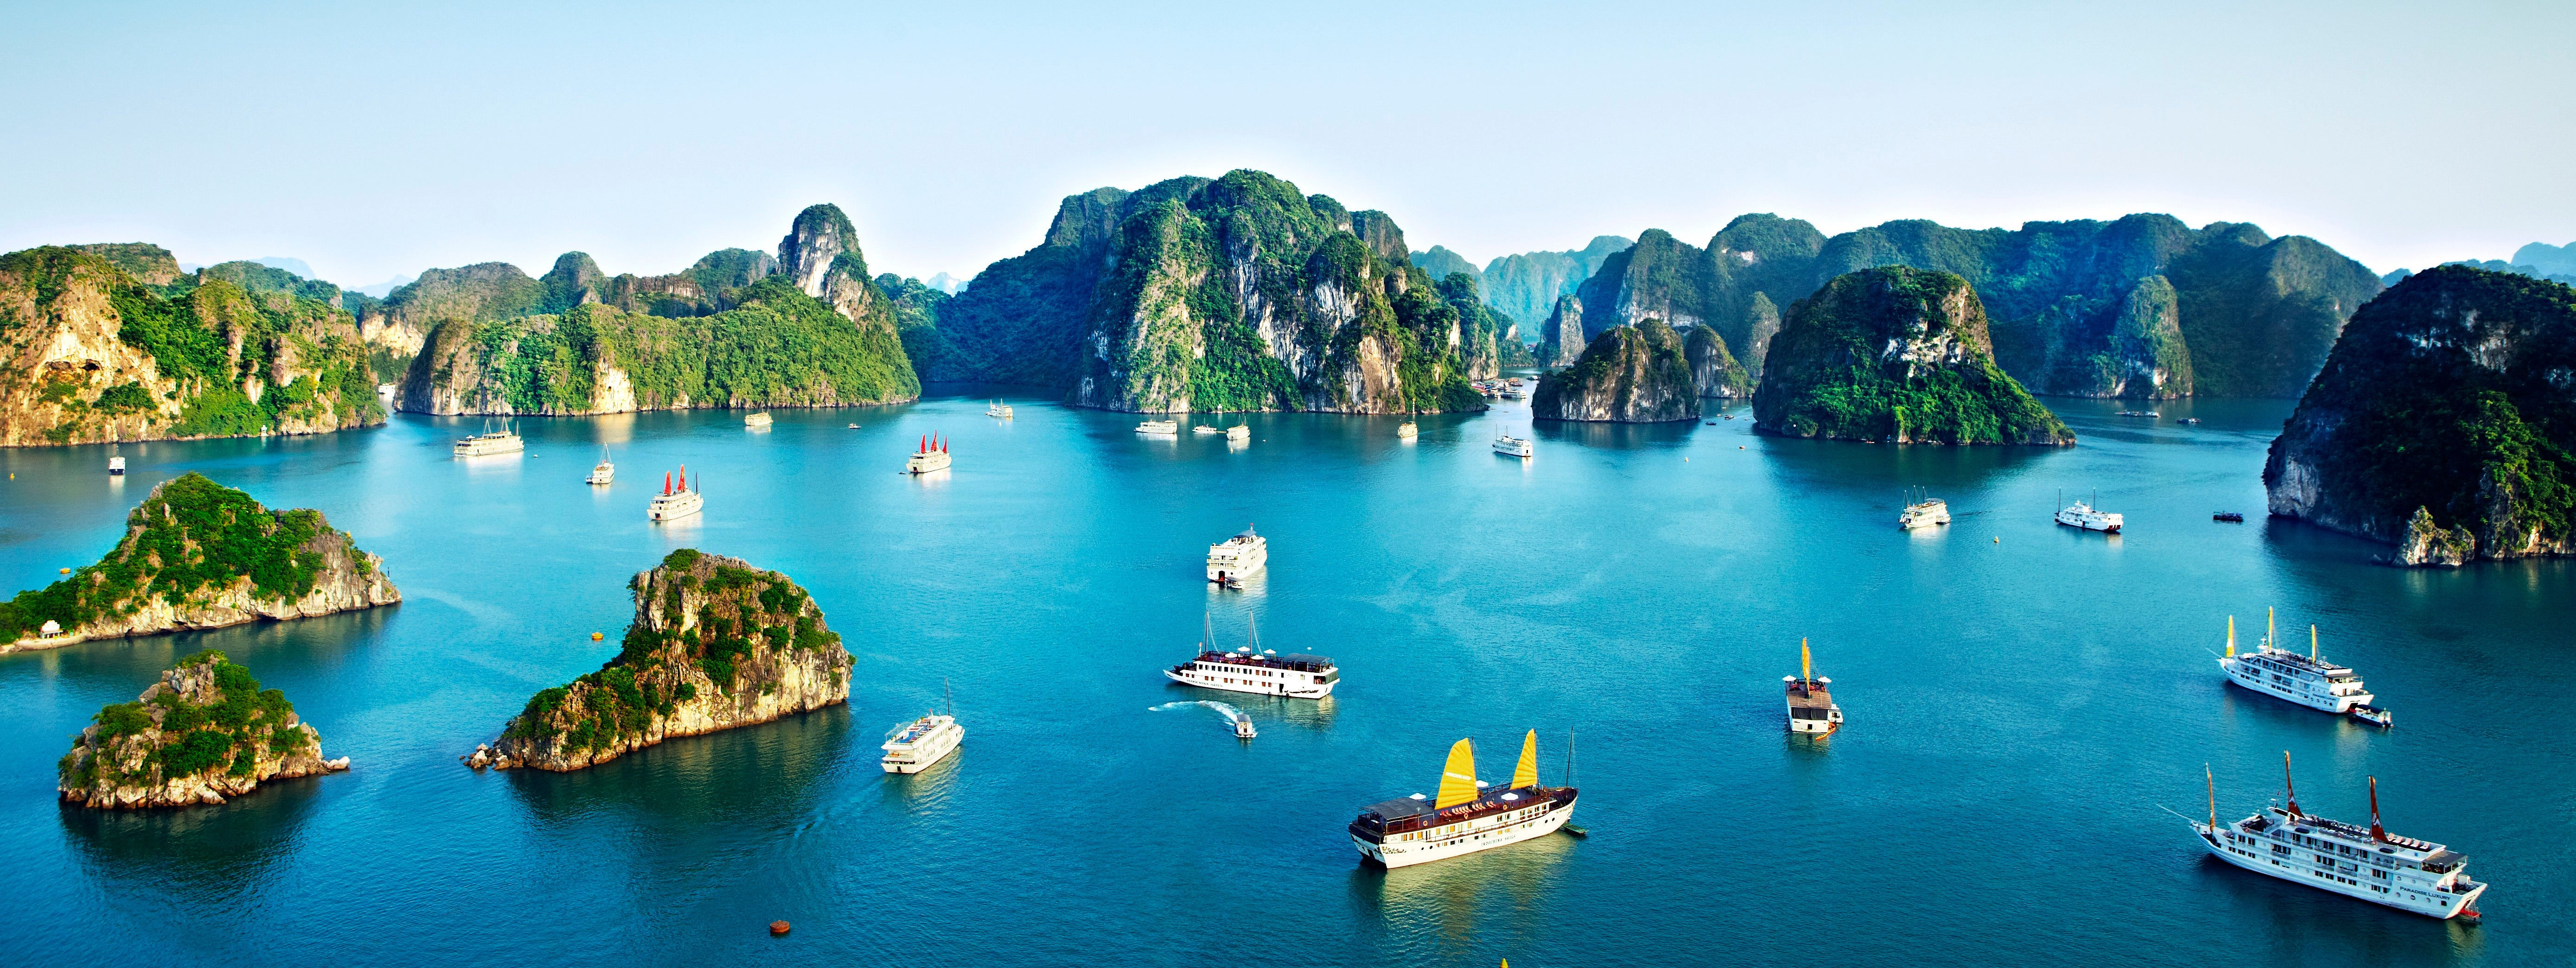 Halong Bay Vietnam Lonely Planet